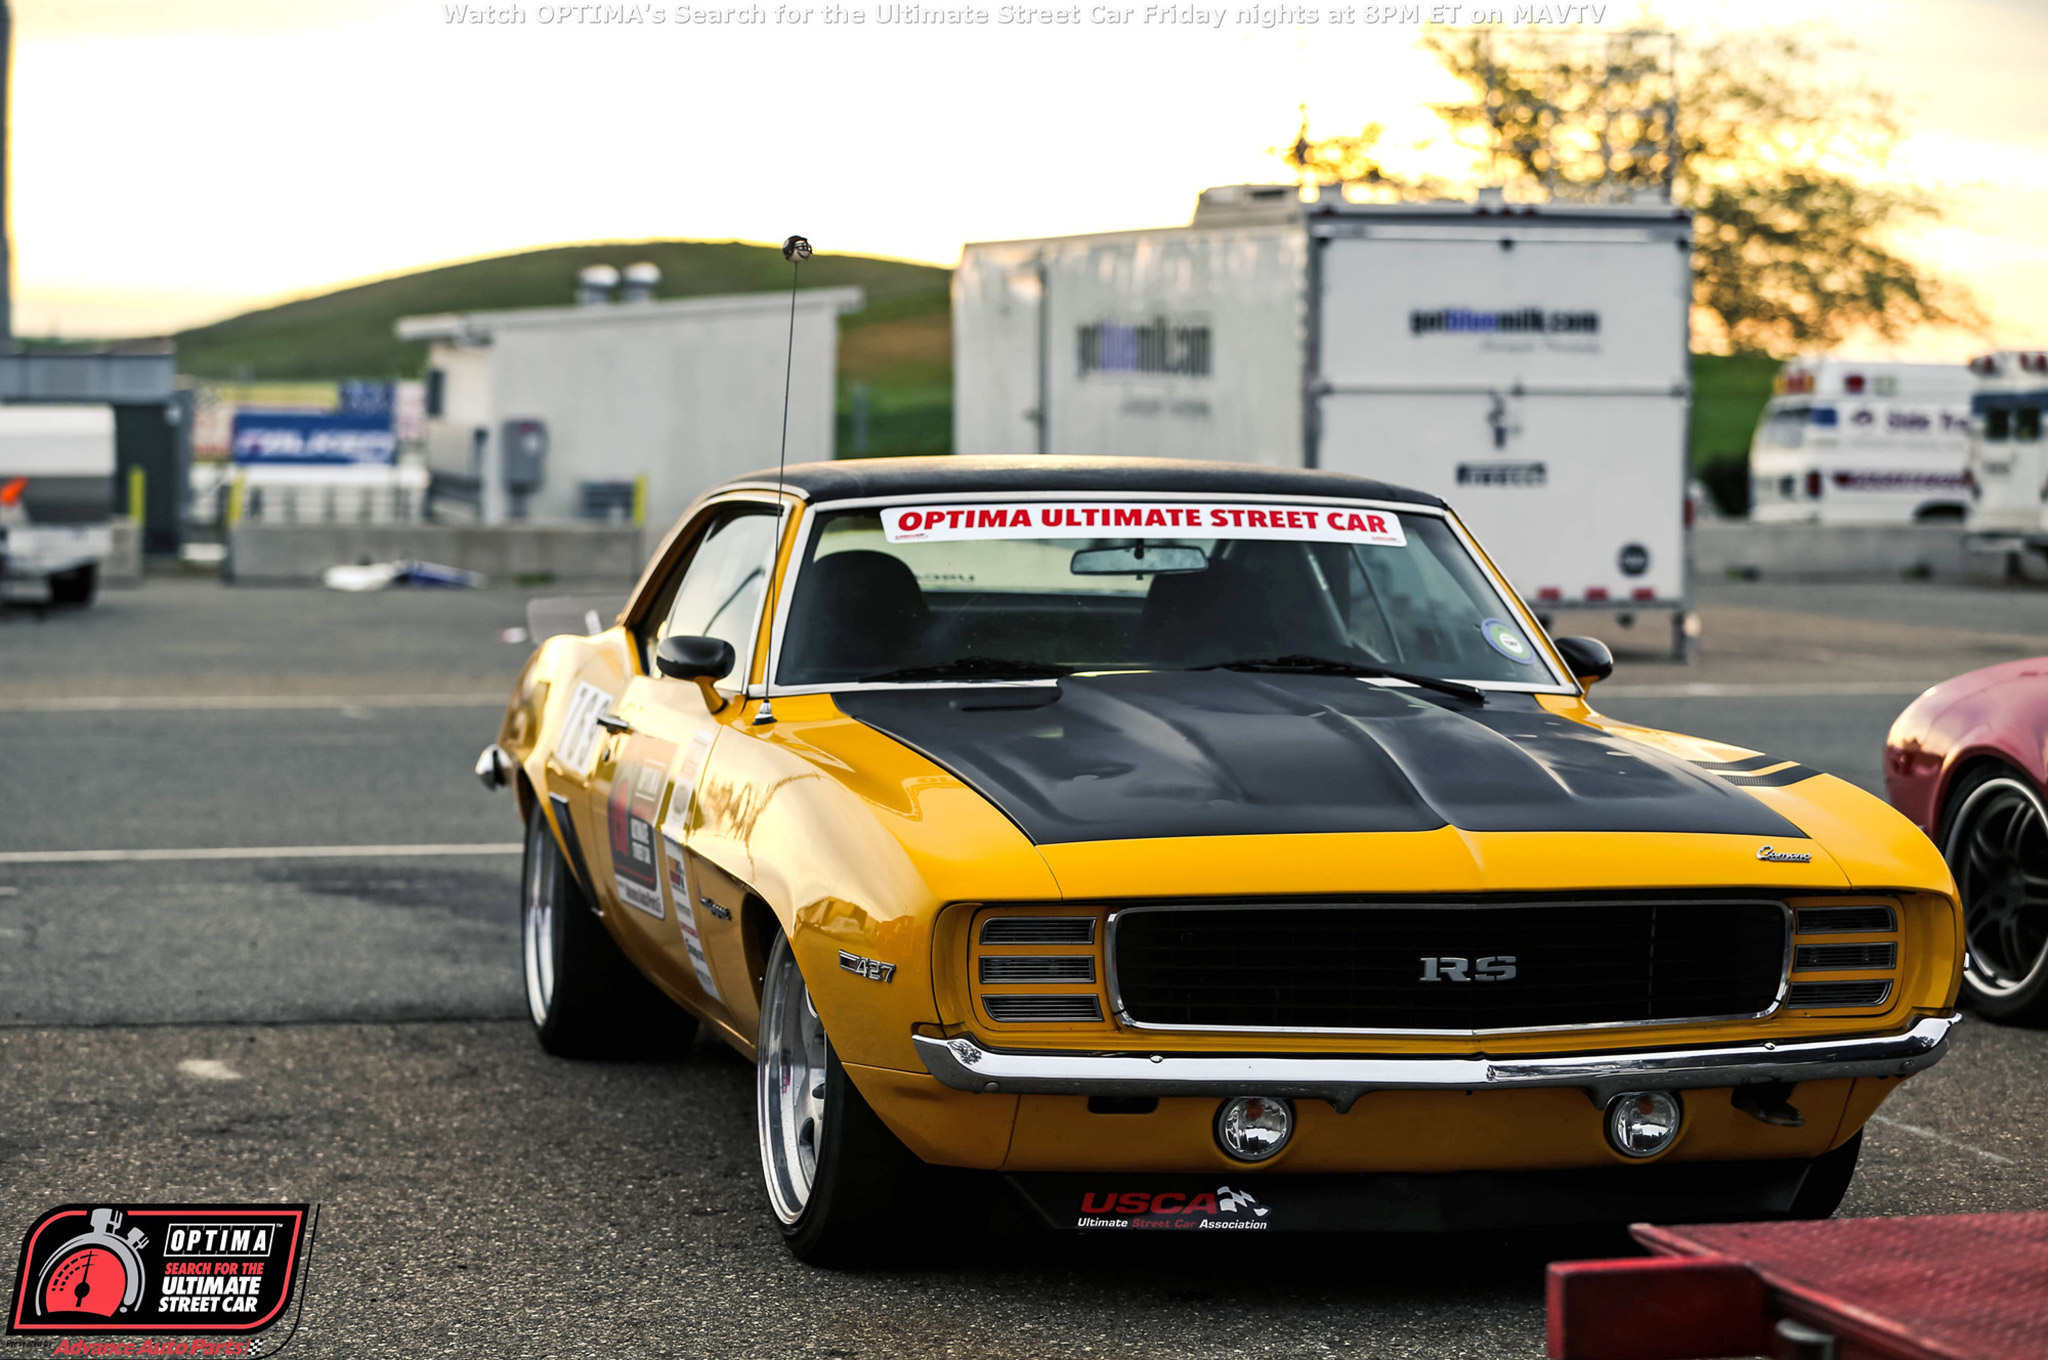 Rules and scoring were once again tweaked for the 2016 season, which helped Efrain Diaz's 1969 Camaro make the podium in the GTV class with a Third-Place finish. His overall score was identical to that of Mike Maier's Mustang, but the tiebreaker went to the higher score in the Lingenfelter Design & Engineering Challenge. Maier had points docked in that segment for non-functioning lights (this is a street car event), giving the tiebreaker to Diaz.